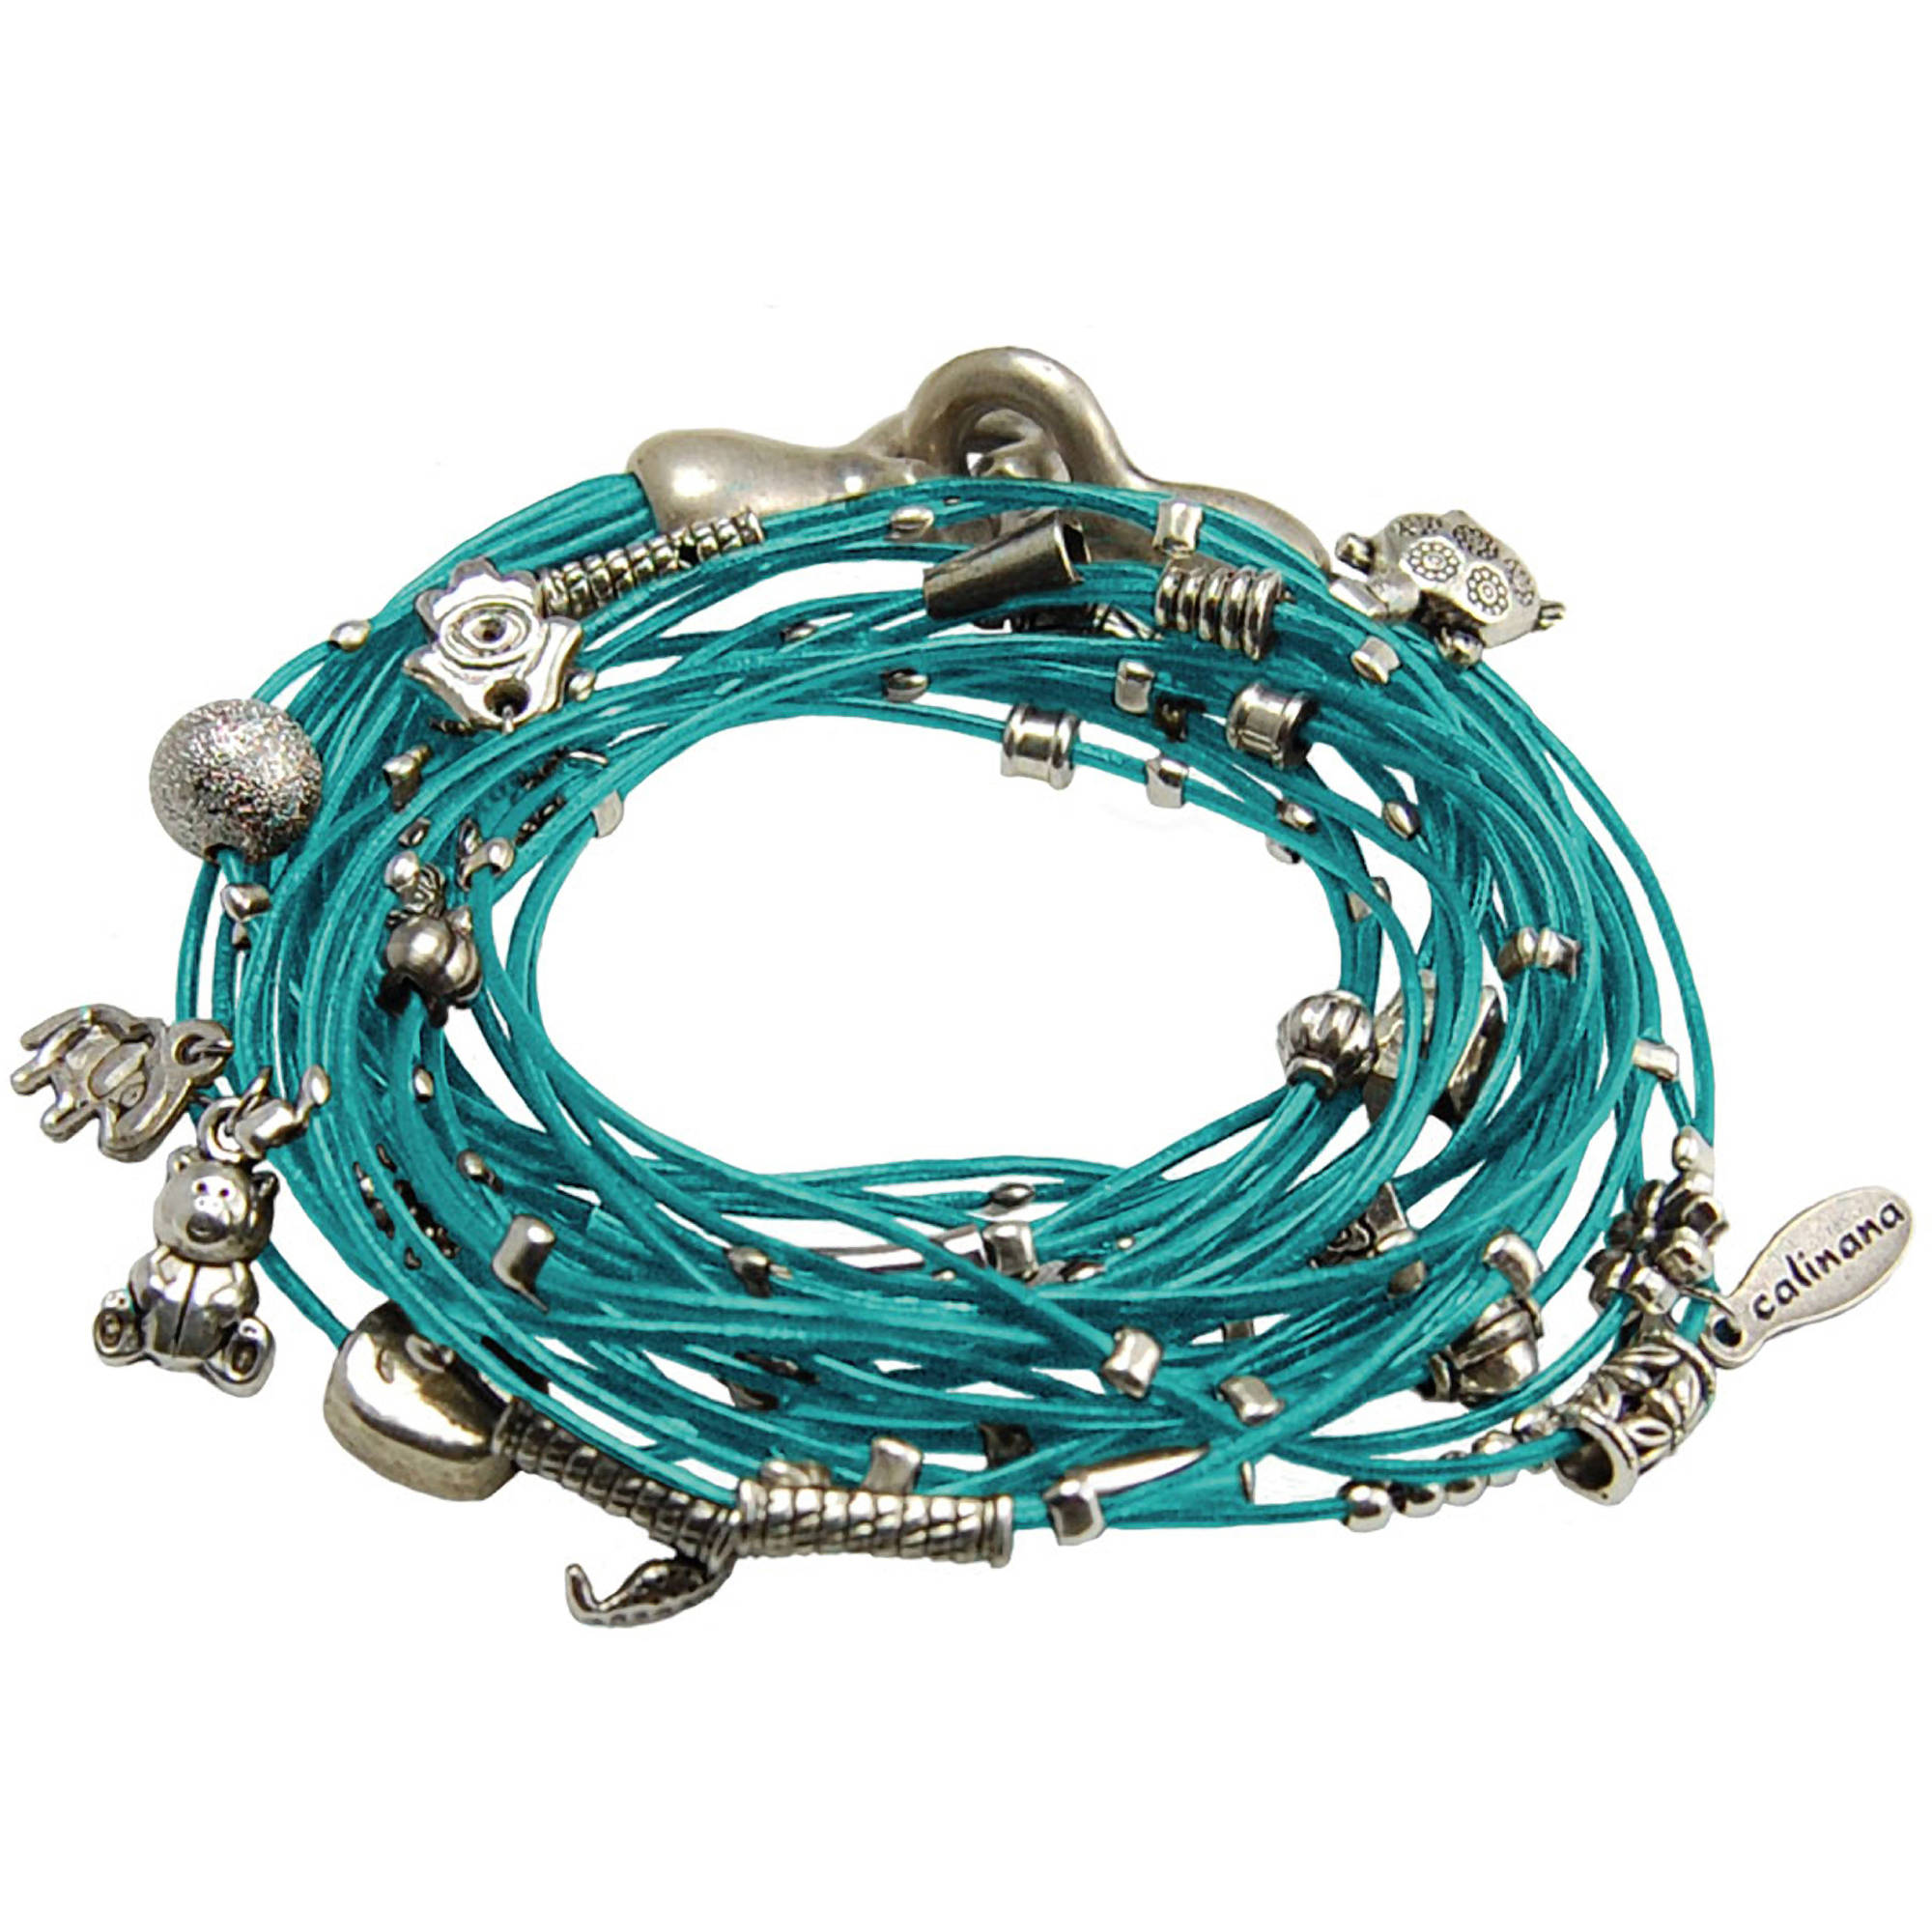 Miss Zoe by Calinana Multi Cord Necklace, Bracelet with Charms, Turquoise/Silver